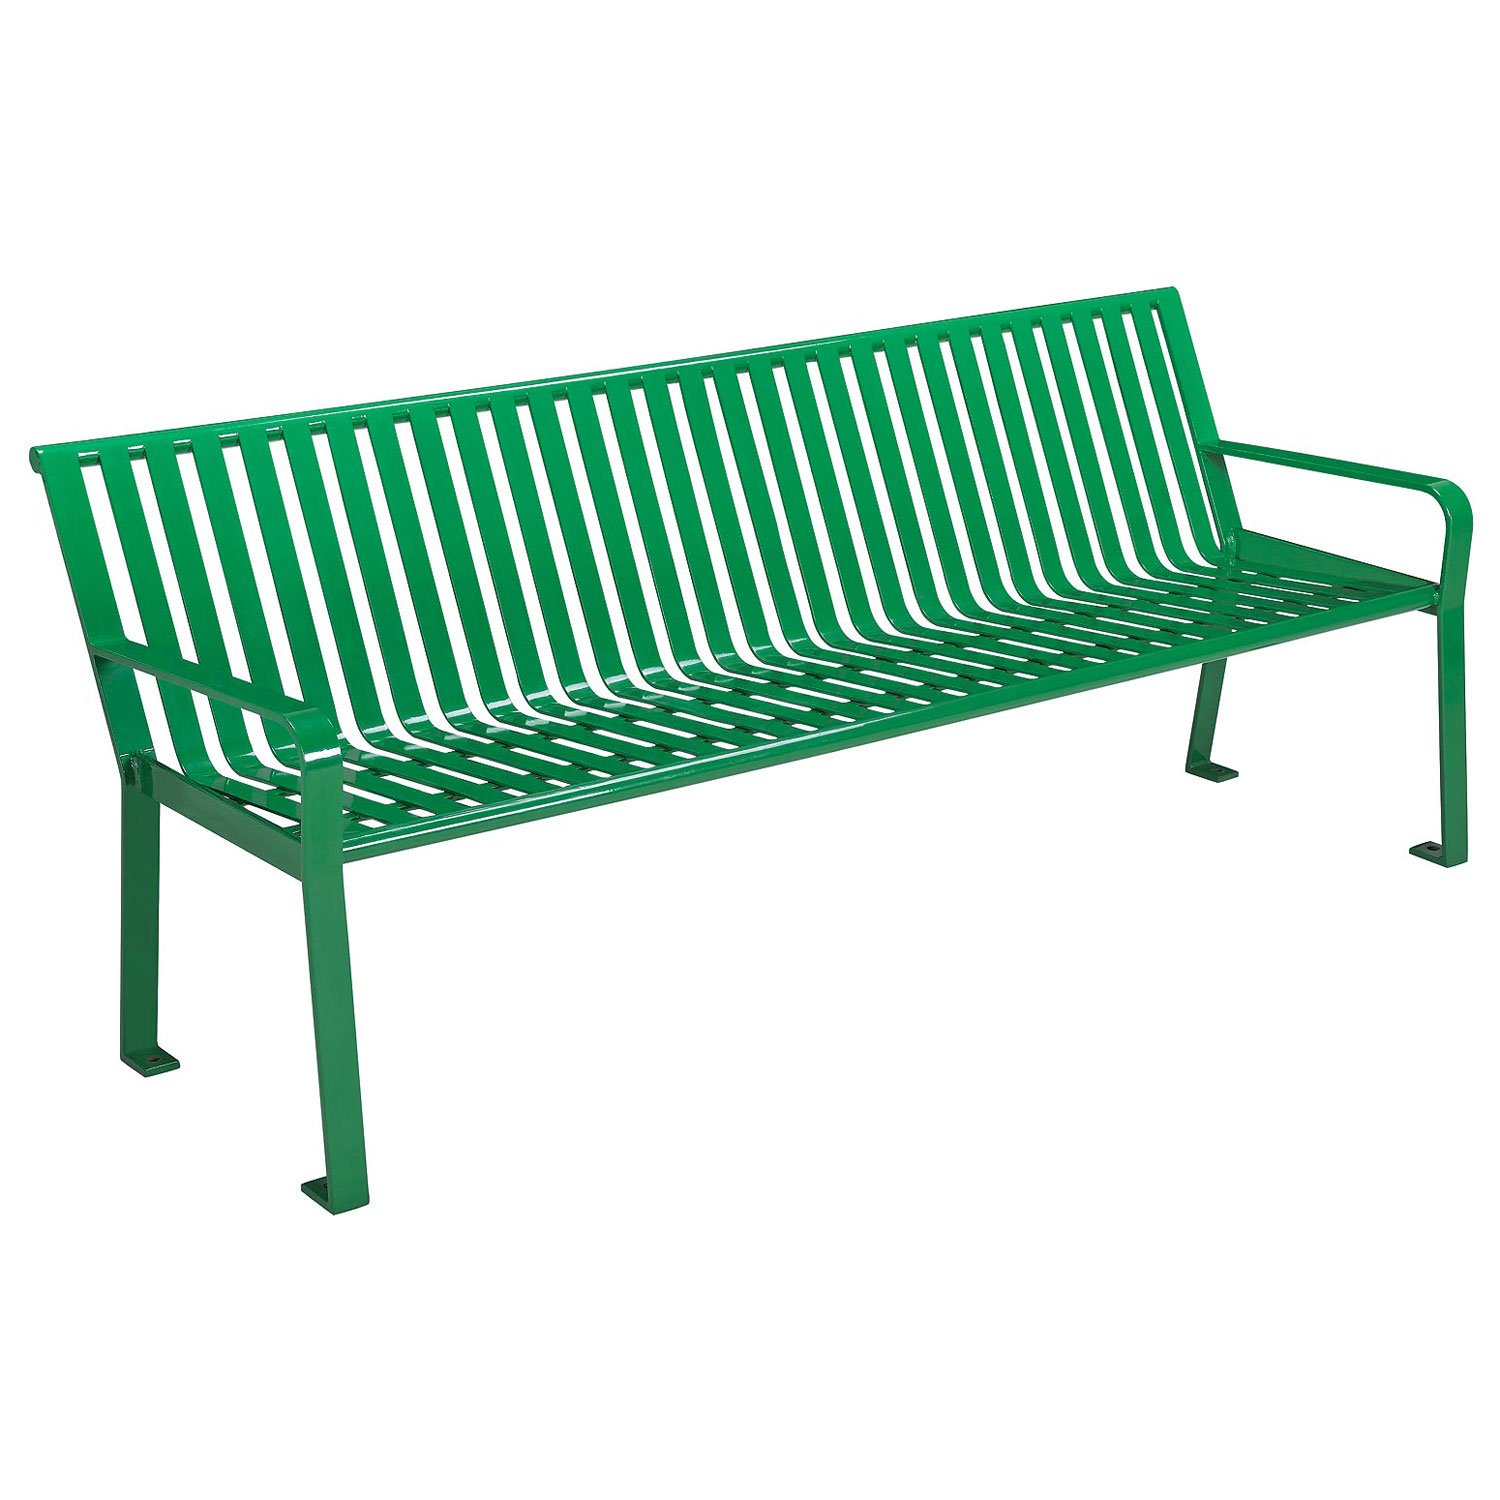 Prime Amazon Com Global Thermoplastic Coated Slat Steel Bench Bralicious Painted Fabric Chair Ideas Braliciousco